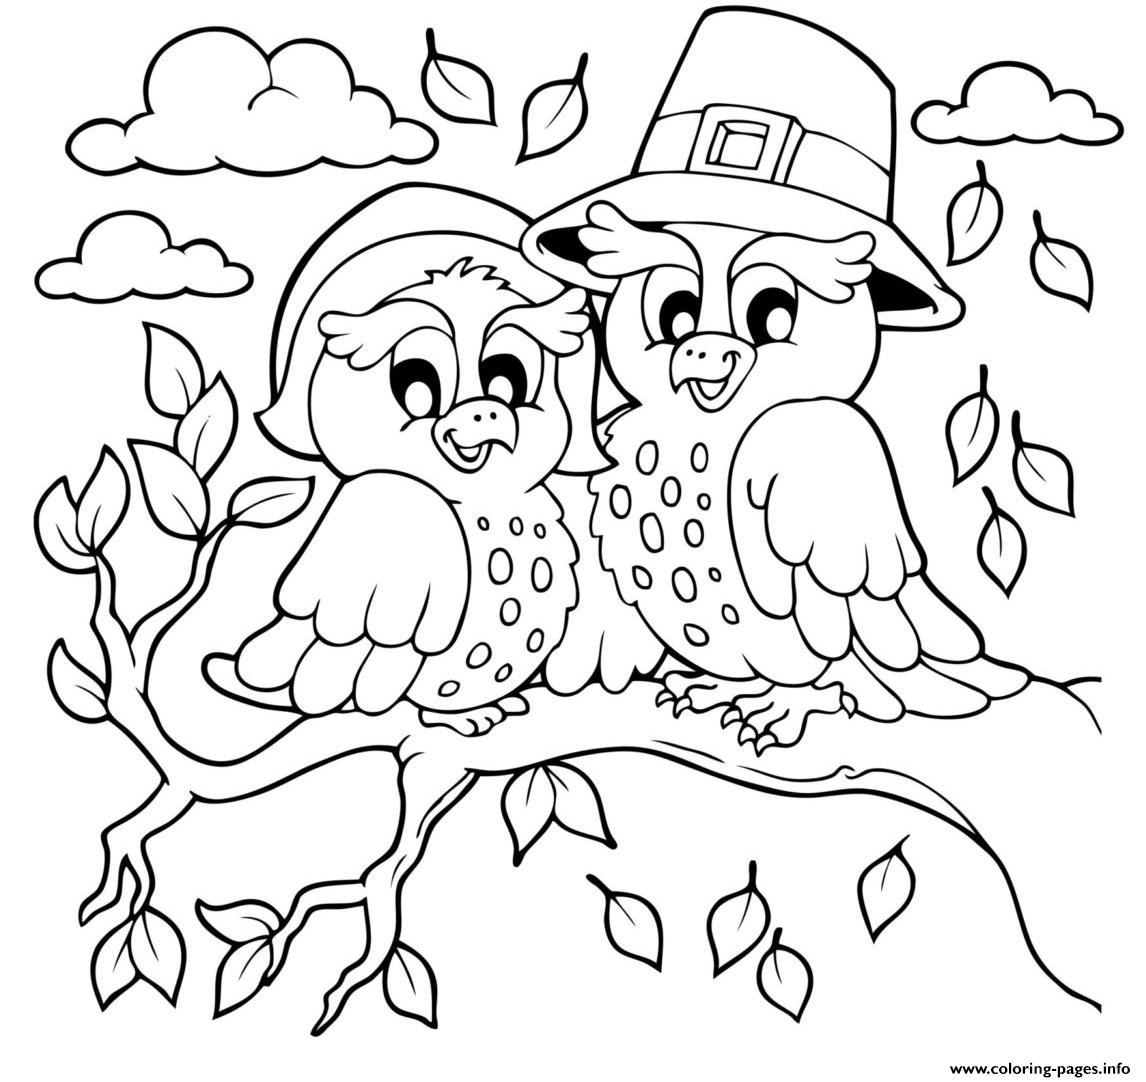 Pilgrim Owls Animal coloring pages